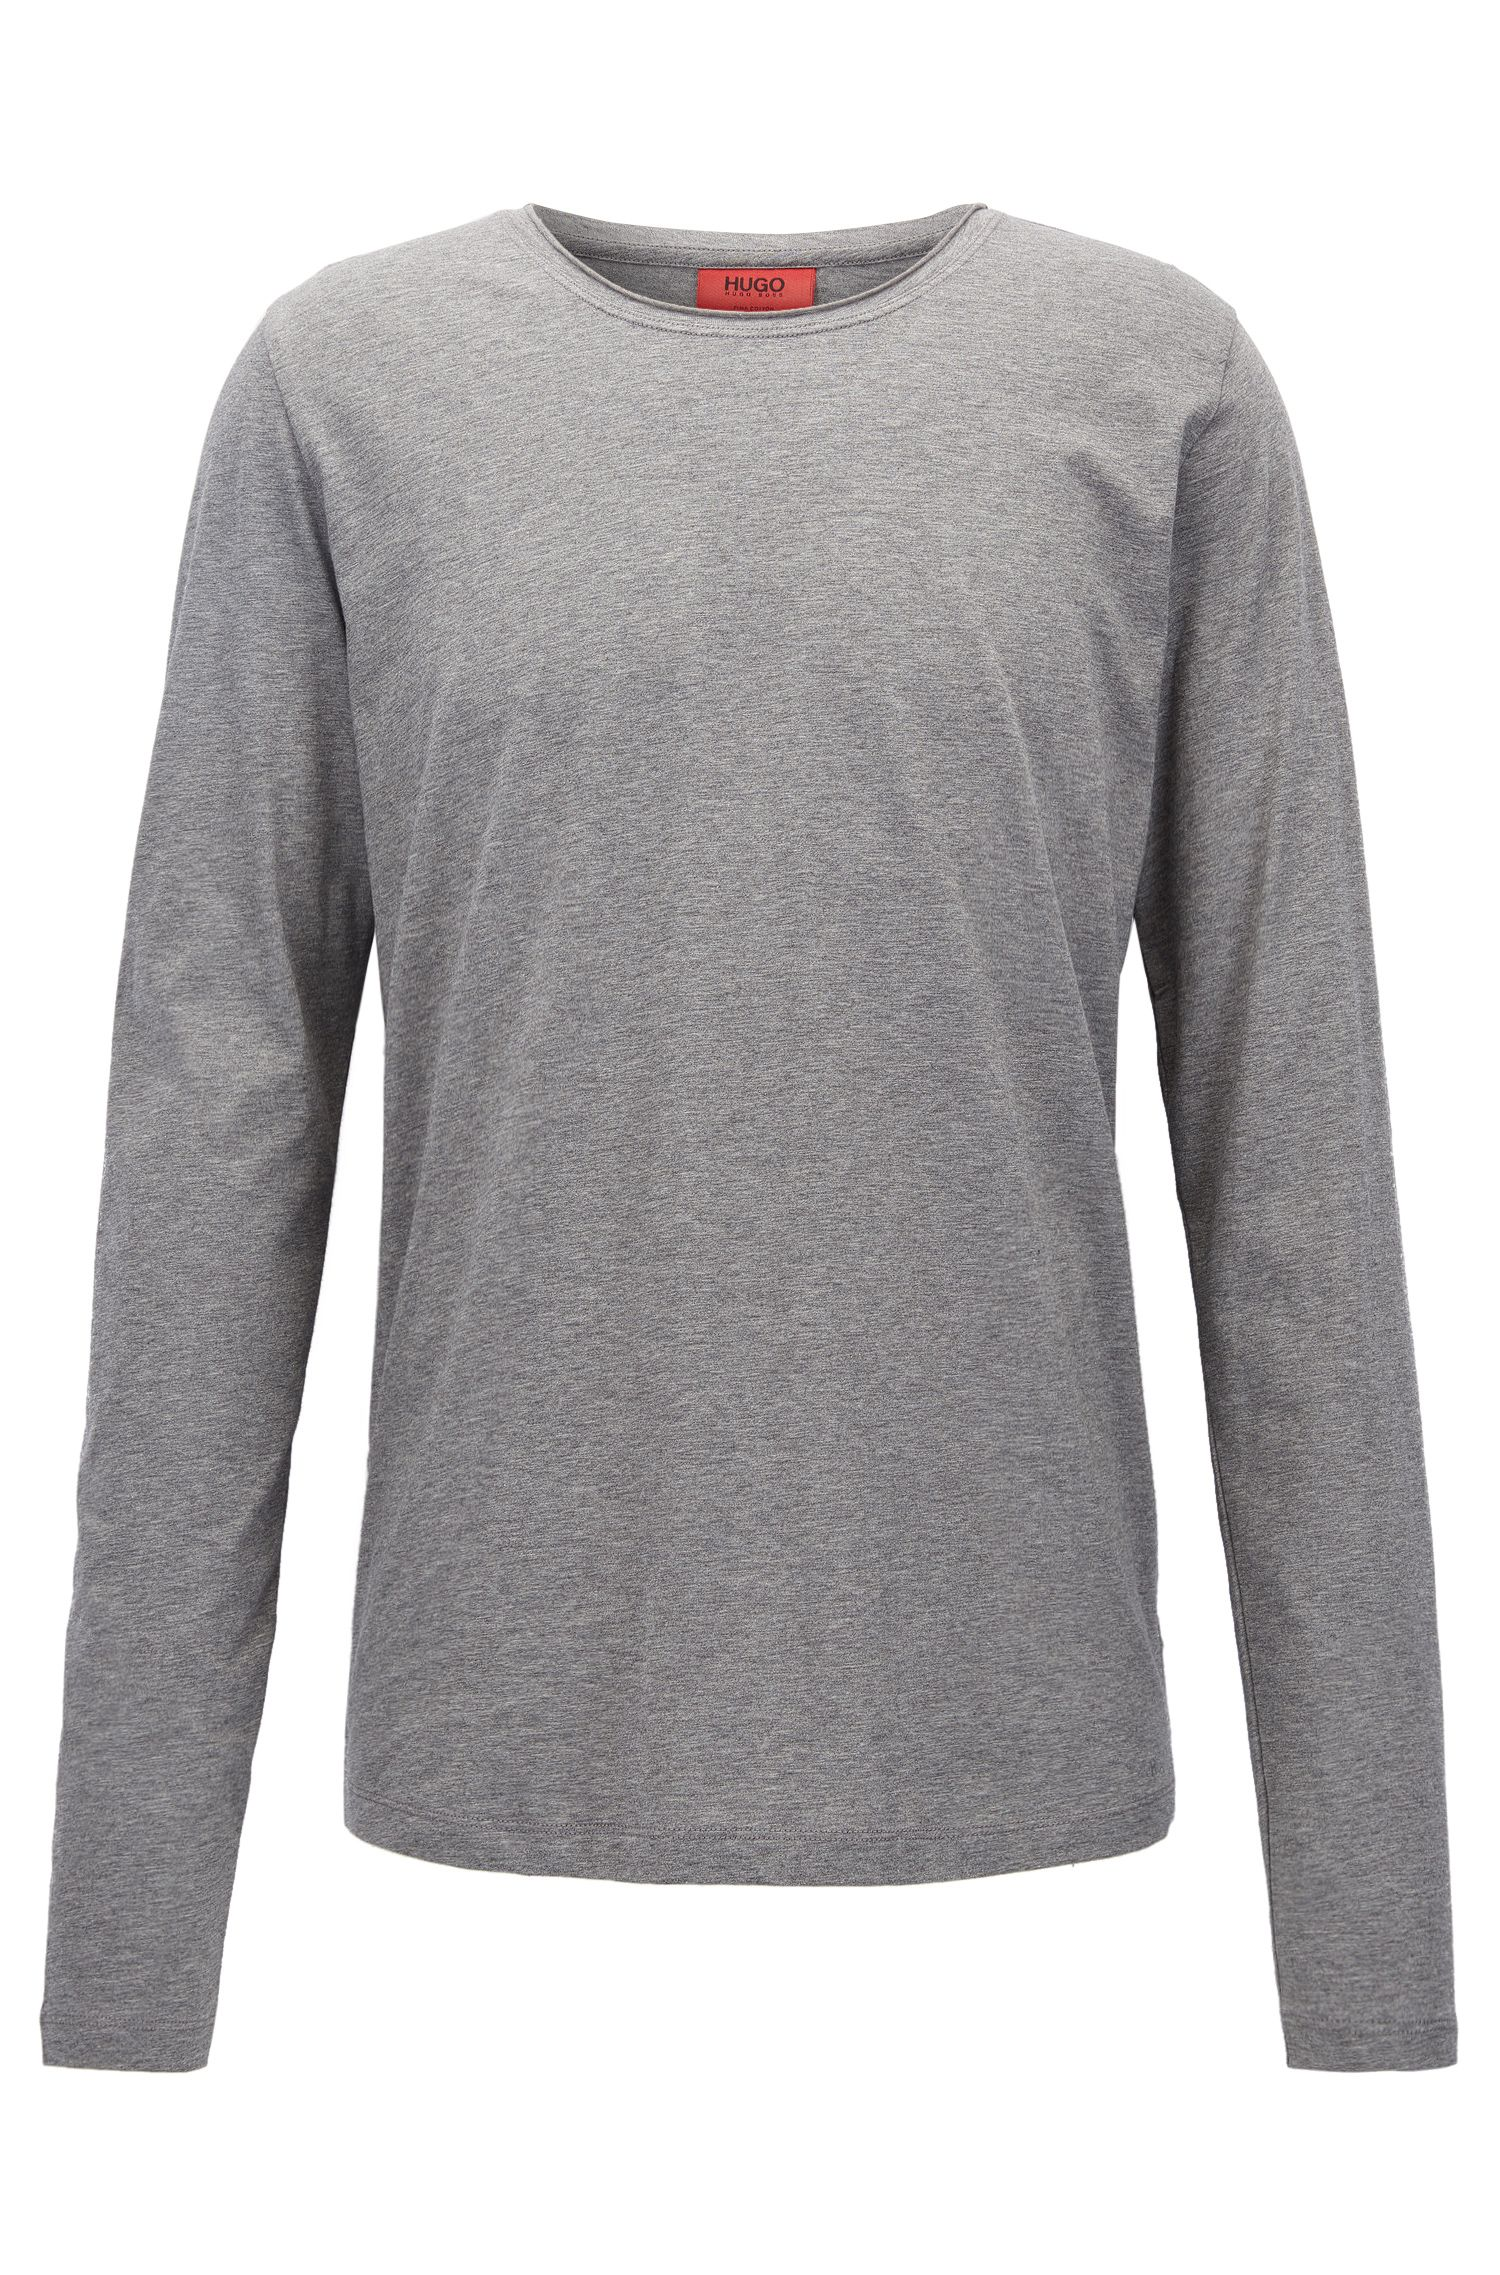 T-shirt relaxed fit a maniche lunghe in cotone Supima